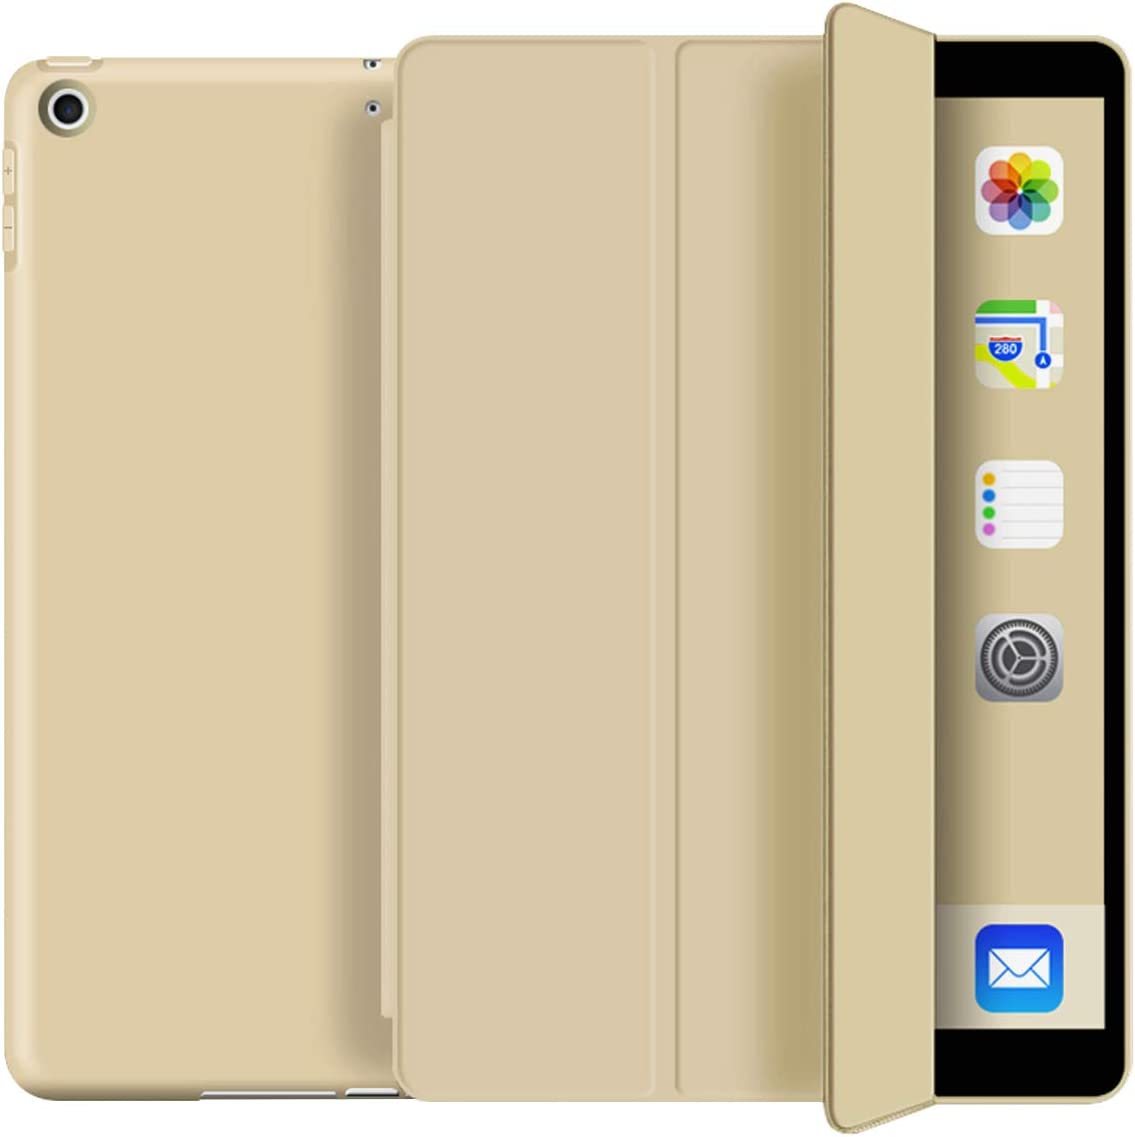 KenKe iPad 9.7 Case 2018 iPad 6th Generation Case / 2017 iPad 5th Generation Case,Ultra Slim Lightweight Smart Cover TPU Soft Auto Sleep/Wake 9.7 inch iPad 5th/6th Gen A1822,A1823,A1893,A1954-Gold